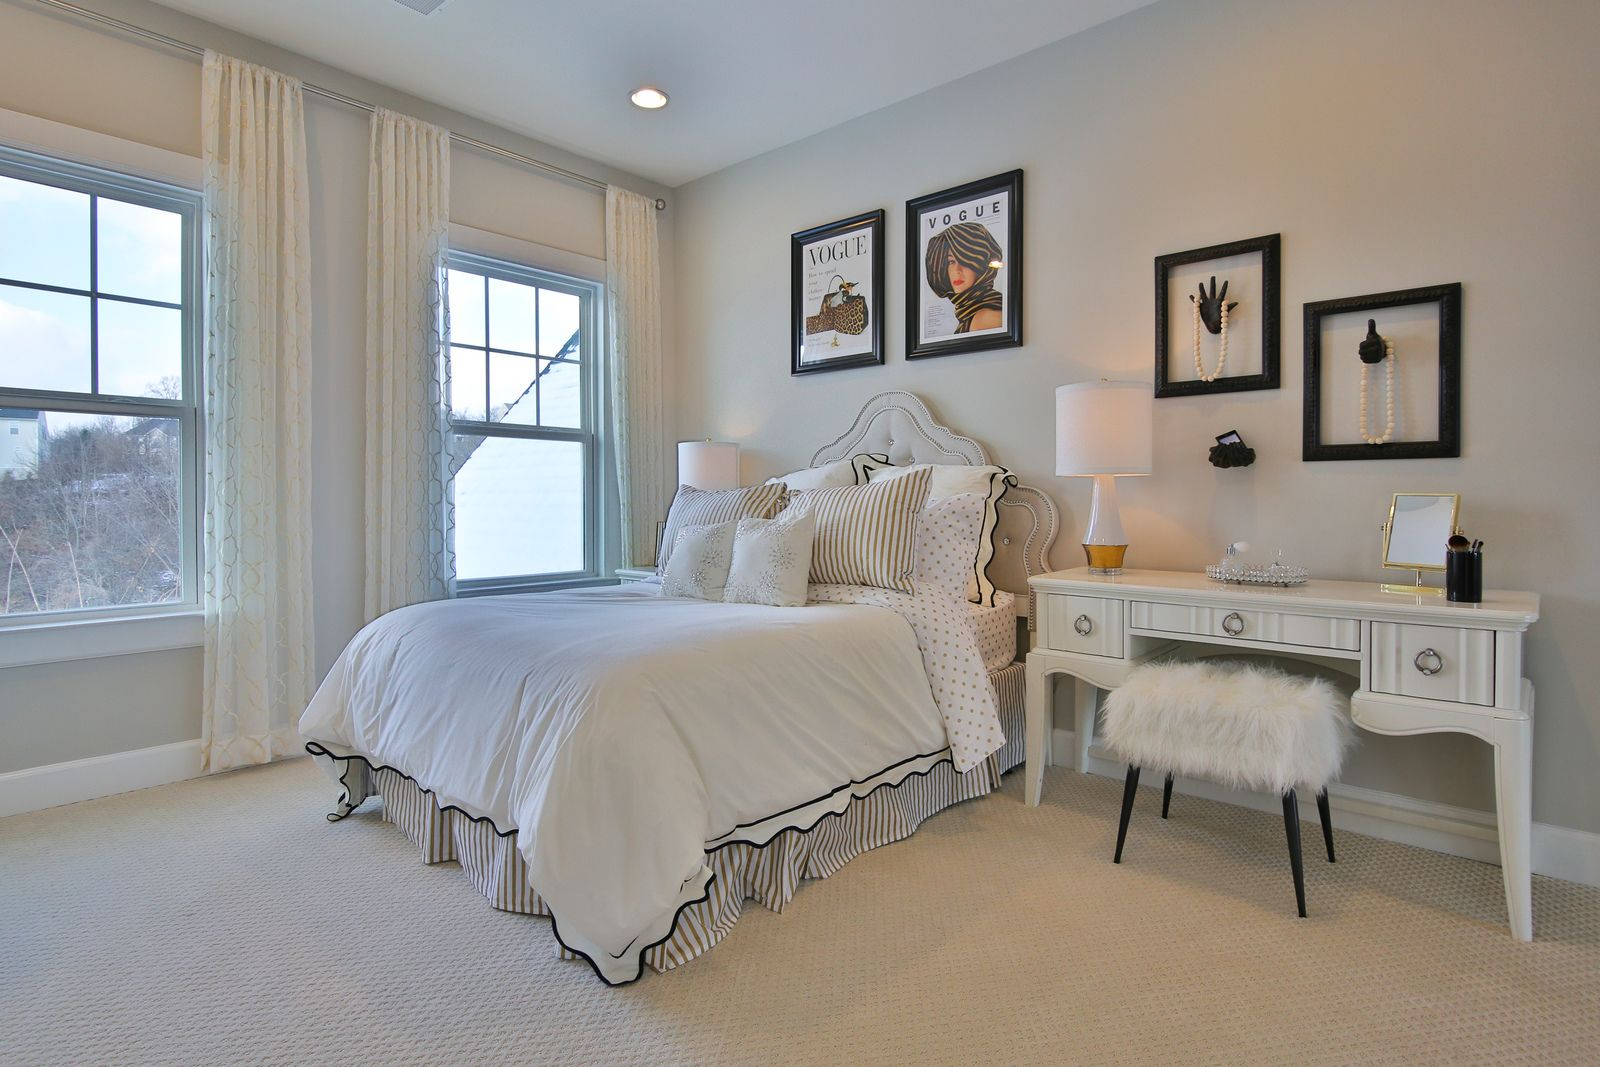 Bedroom featured in the Radford By NVHomes in Washington, VA